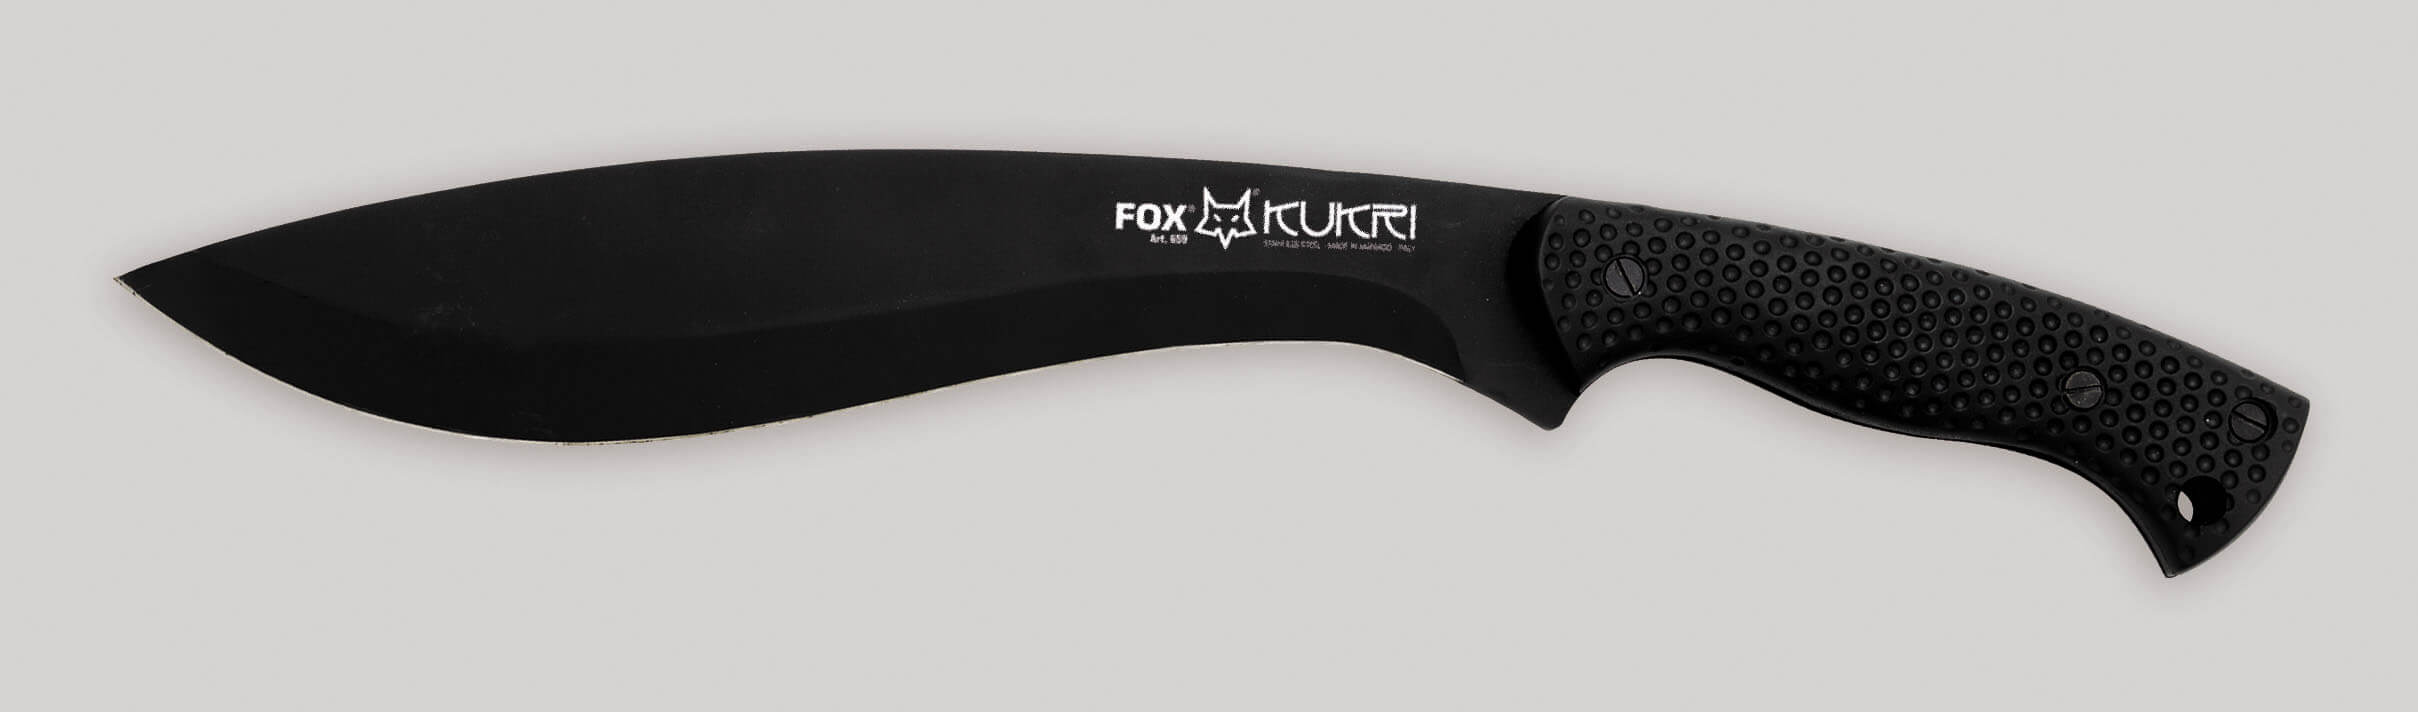 Fox Kukri machette-0